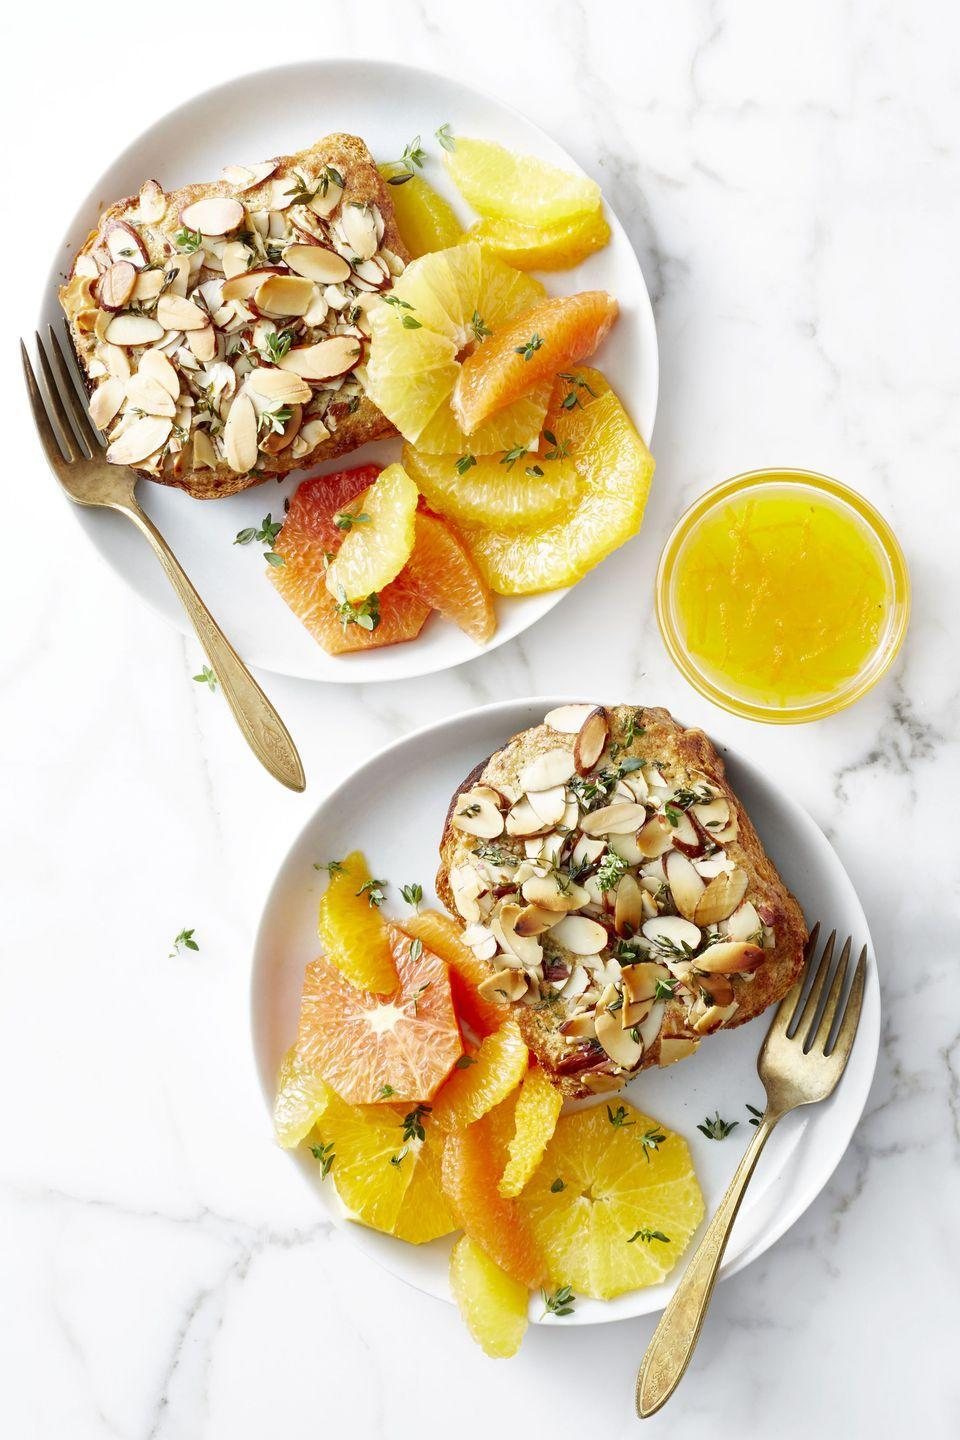 "<p>Look no further than this citrusy, almond French toast for an easy brunch idea that will wake you right up.</p><p><em><a href=""https://www.goodhousekeeping.com/food-recipes/a46689/twice-baked-citrus-almond-brioche/"" rel=""nofollow noopener"" target=""_blank"" data-ylk=""slk:Get the recipe for Twice-Baked Citrus-Almond Brioche »"" class=""link rapid-noclick-resp"">Get the recipe for Twice-Baked Citrus-Almond Brioche »</a></em> </p>"